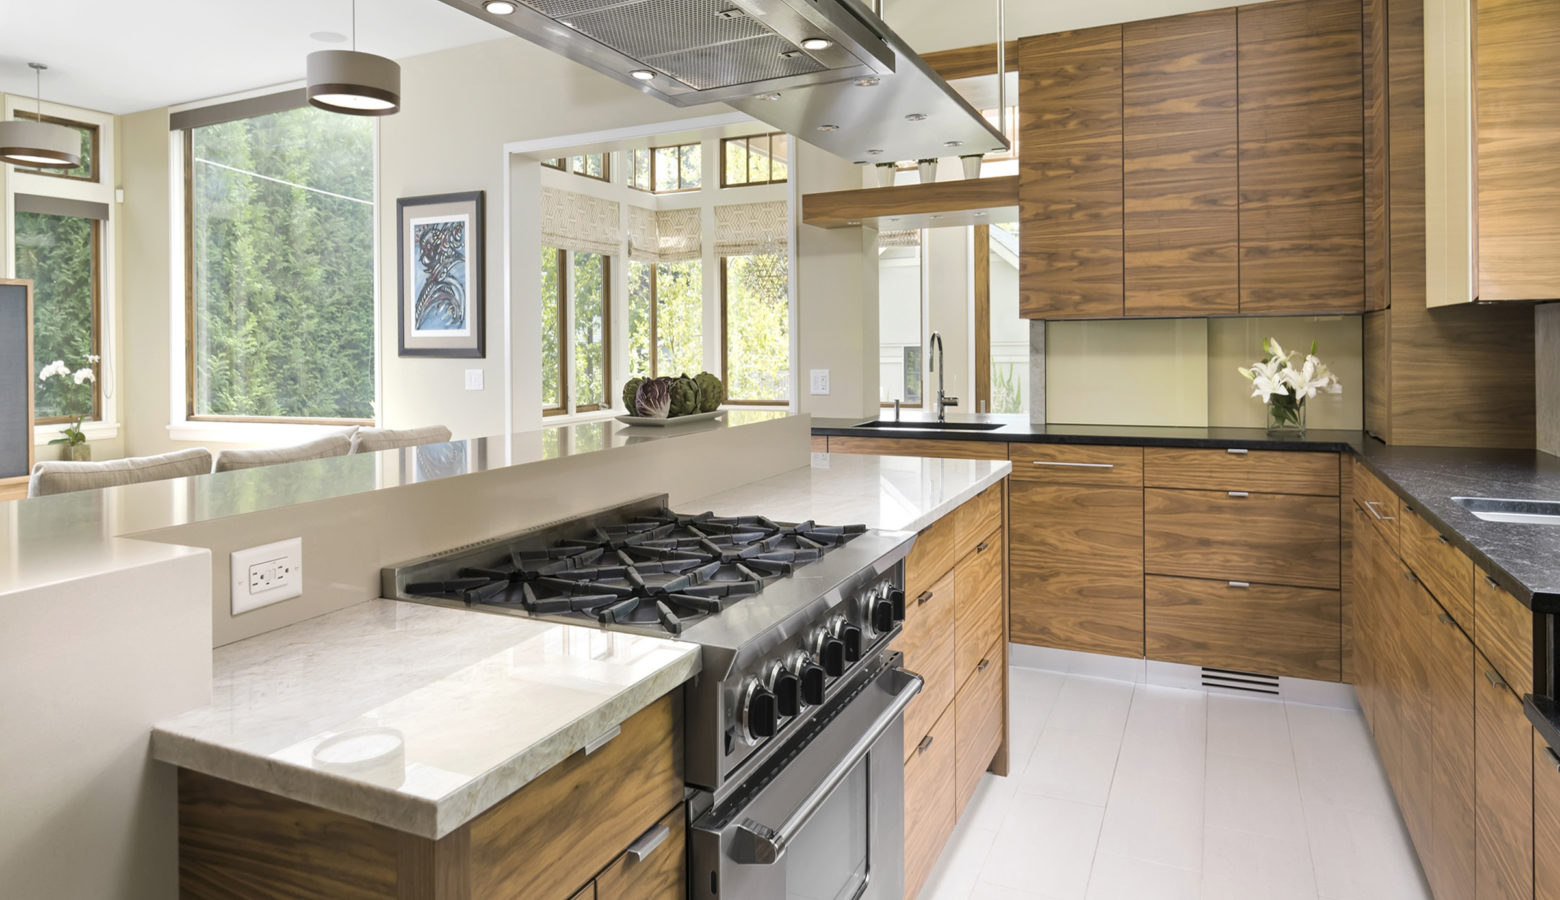 Kitchen Design Tips Islands Cooktops Sinks Chicago Architects